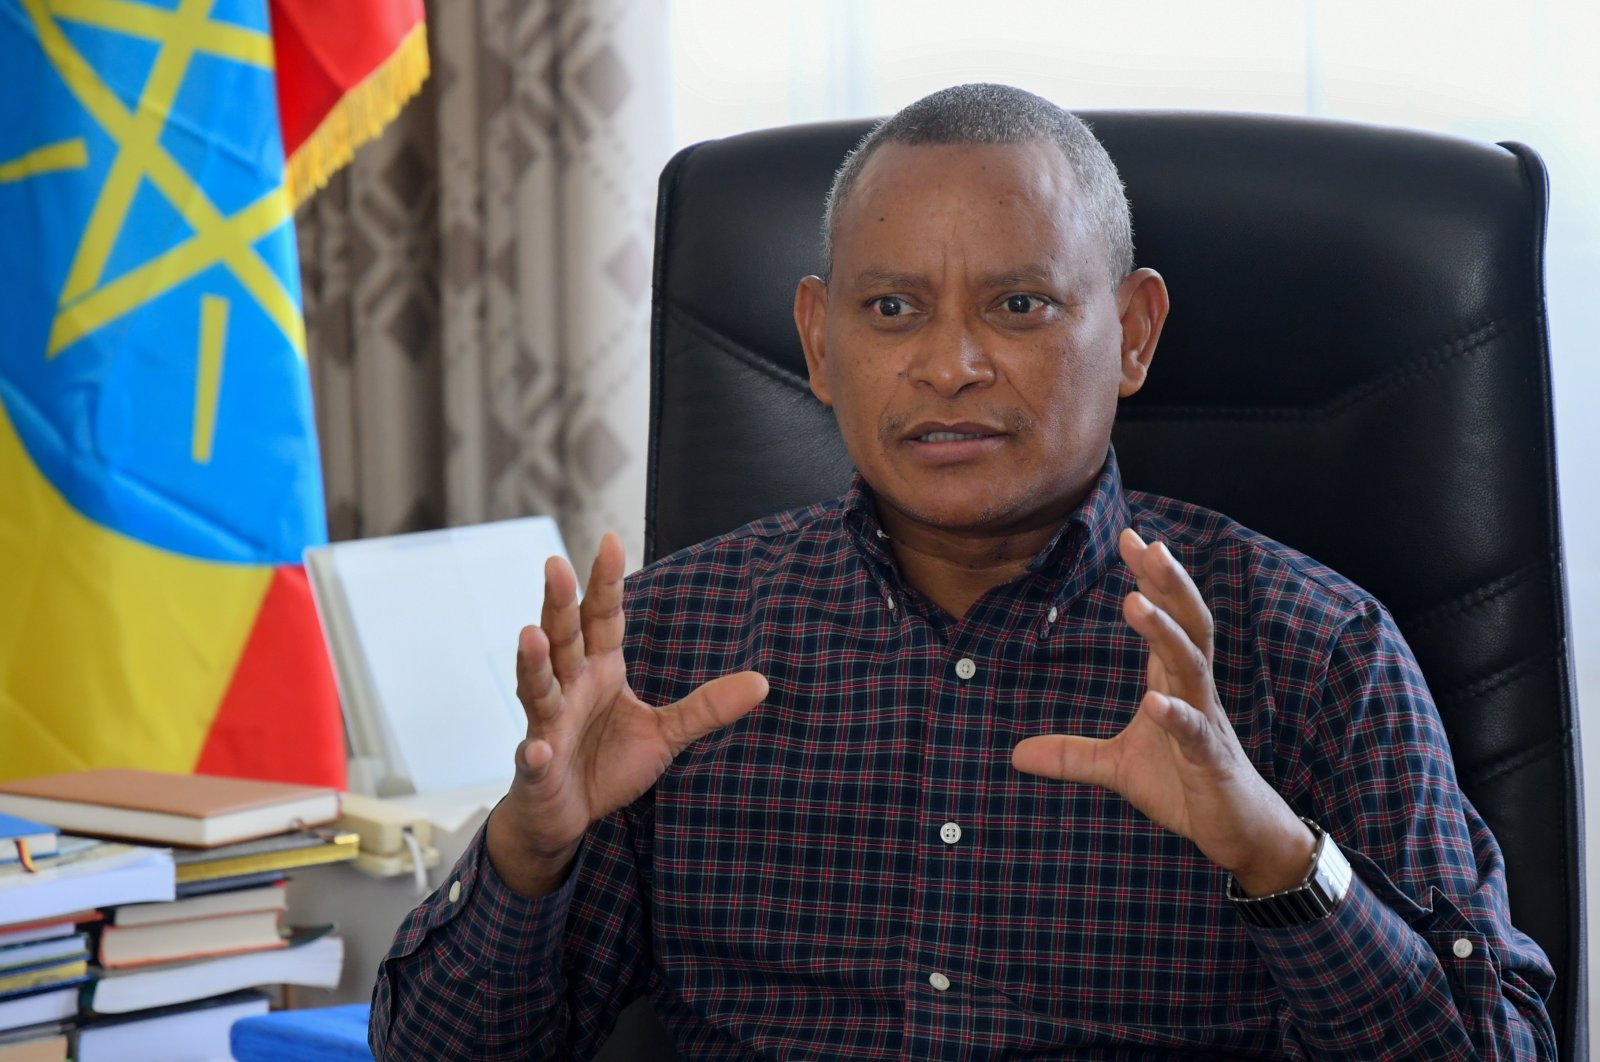 Debretsion Gebremichael, the chairperson of the Tigray People's Liberation Front (TPLF) and the current president of Tigray Region, speaks during an interview in the Mekele Tigray region of Ethiopia, June 8, 2019 (EPA File Photo)